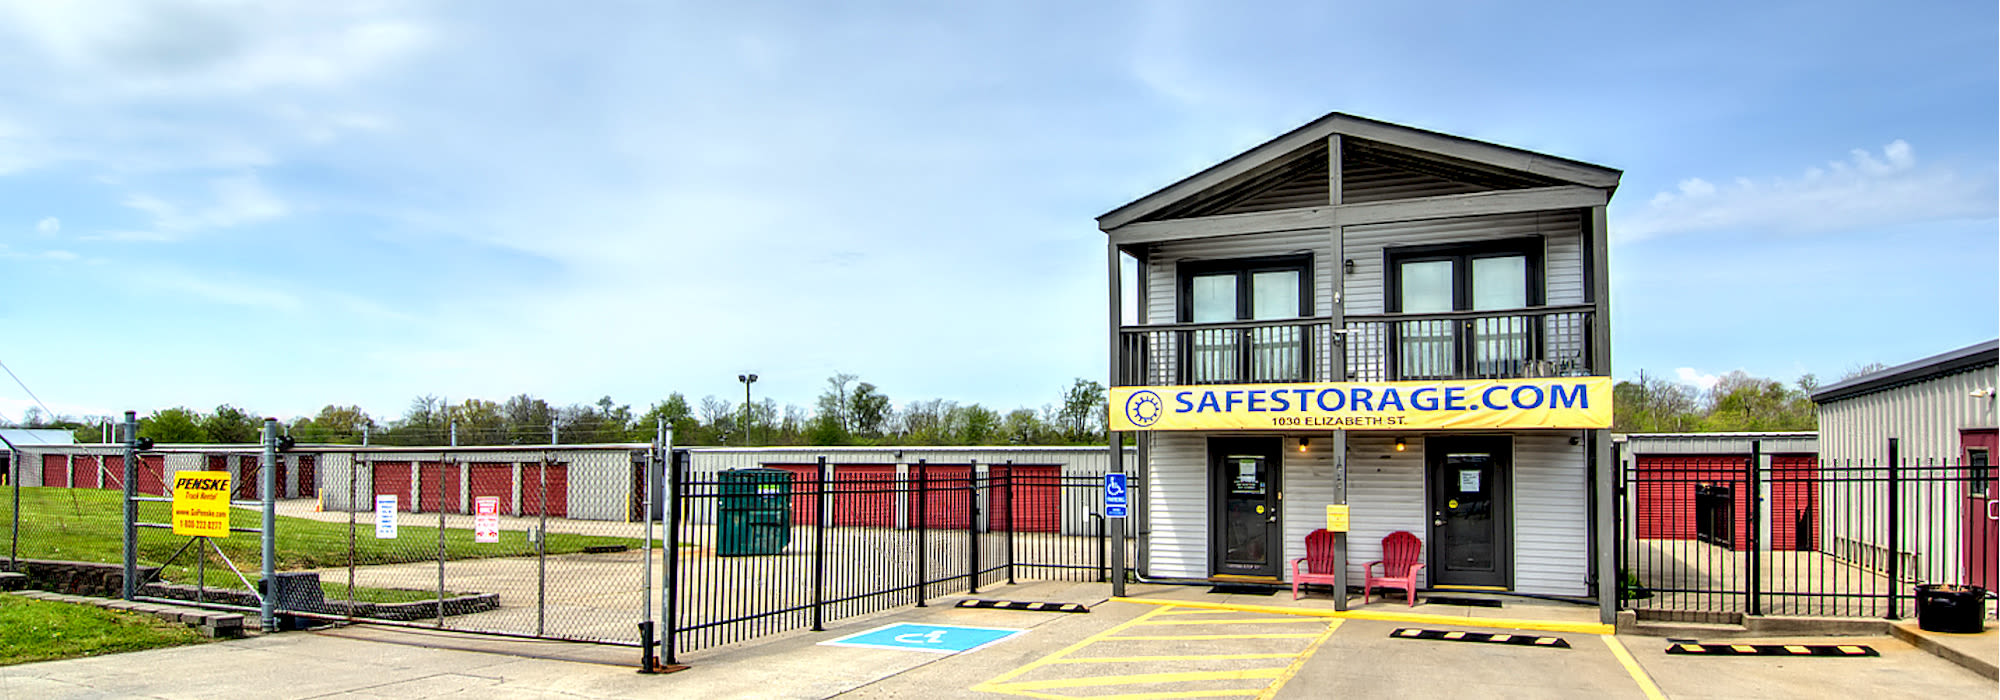 High Quality Safe Storage In Nicholasville, KY